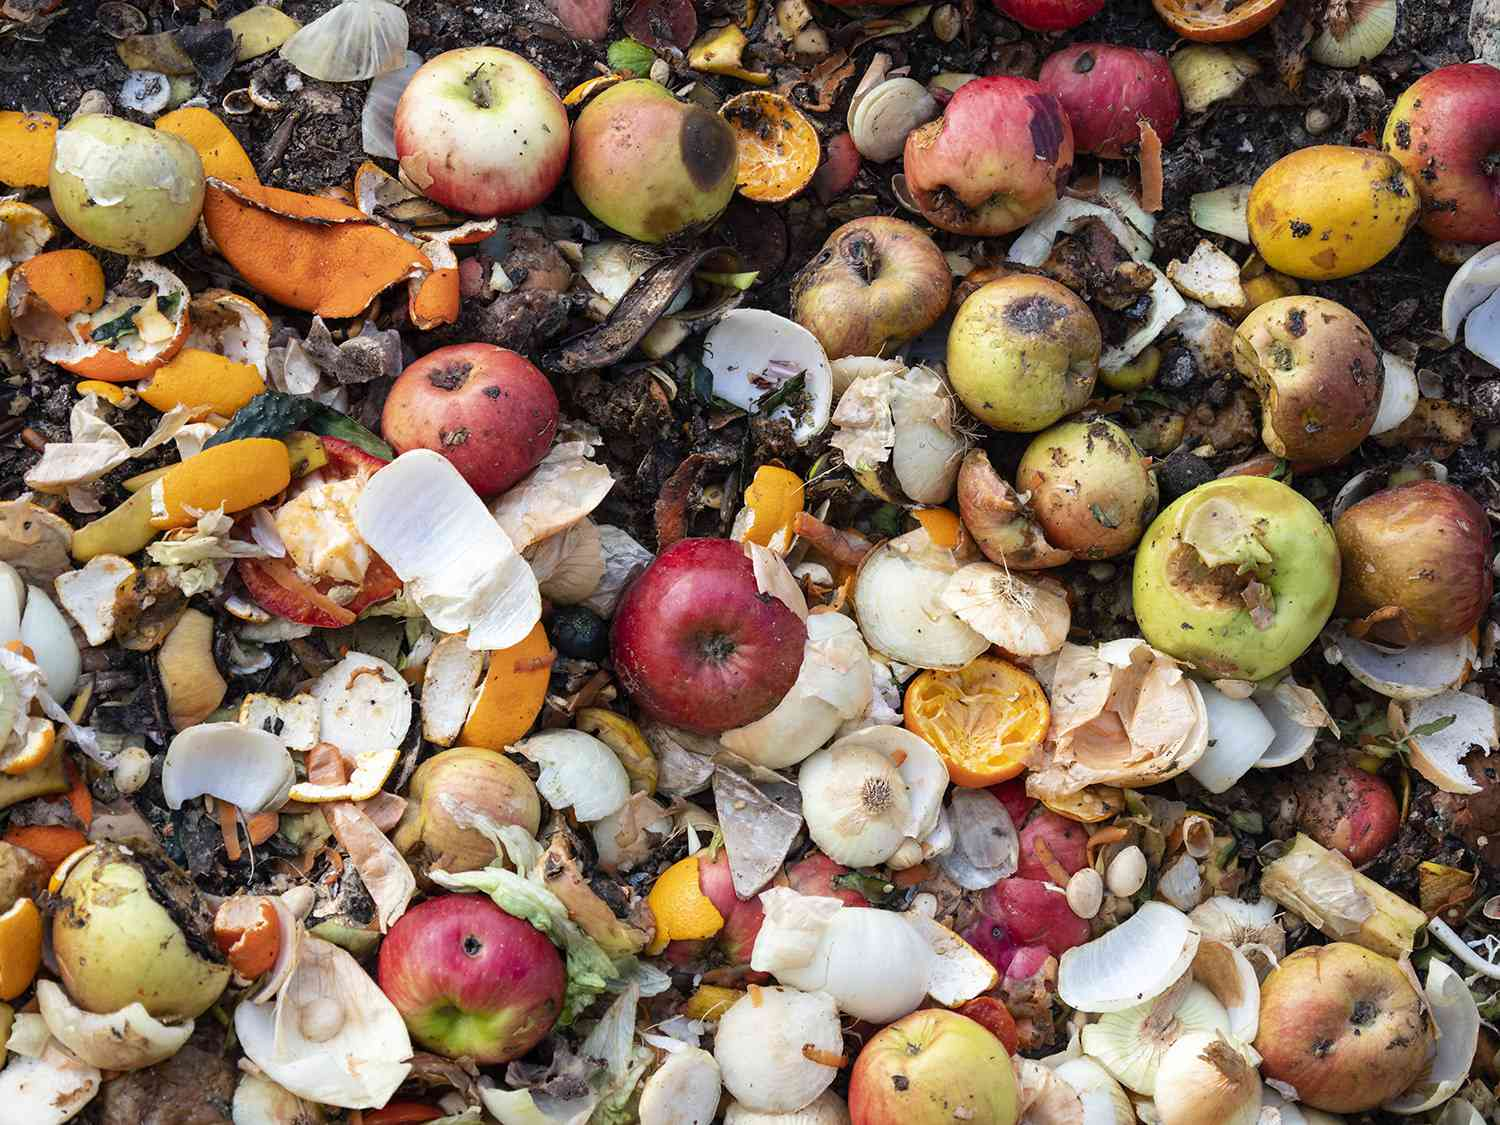 apples, garlic, onions, and other food waste and scraps